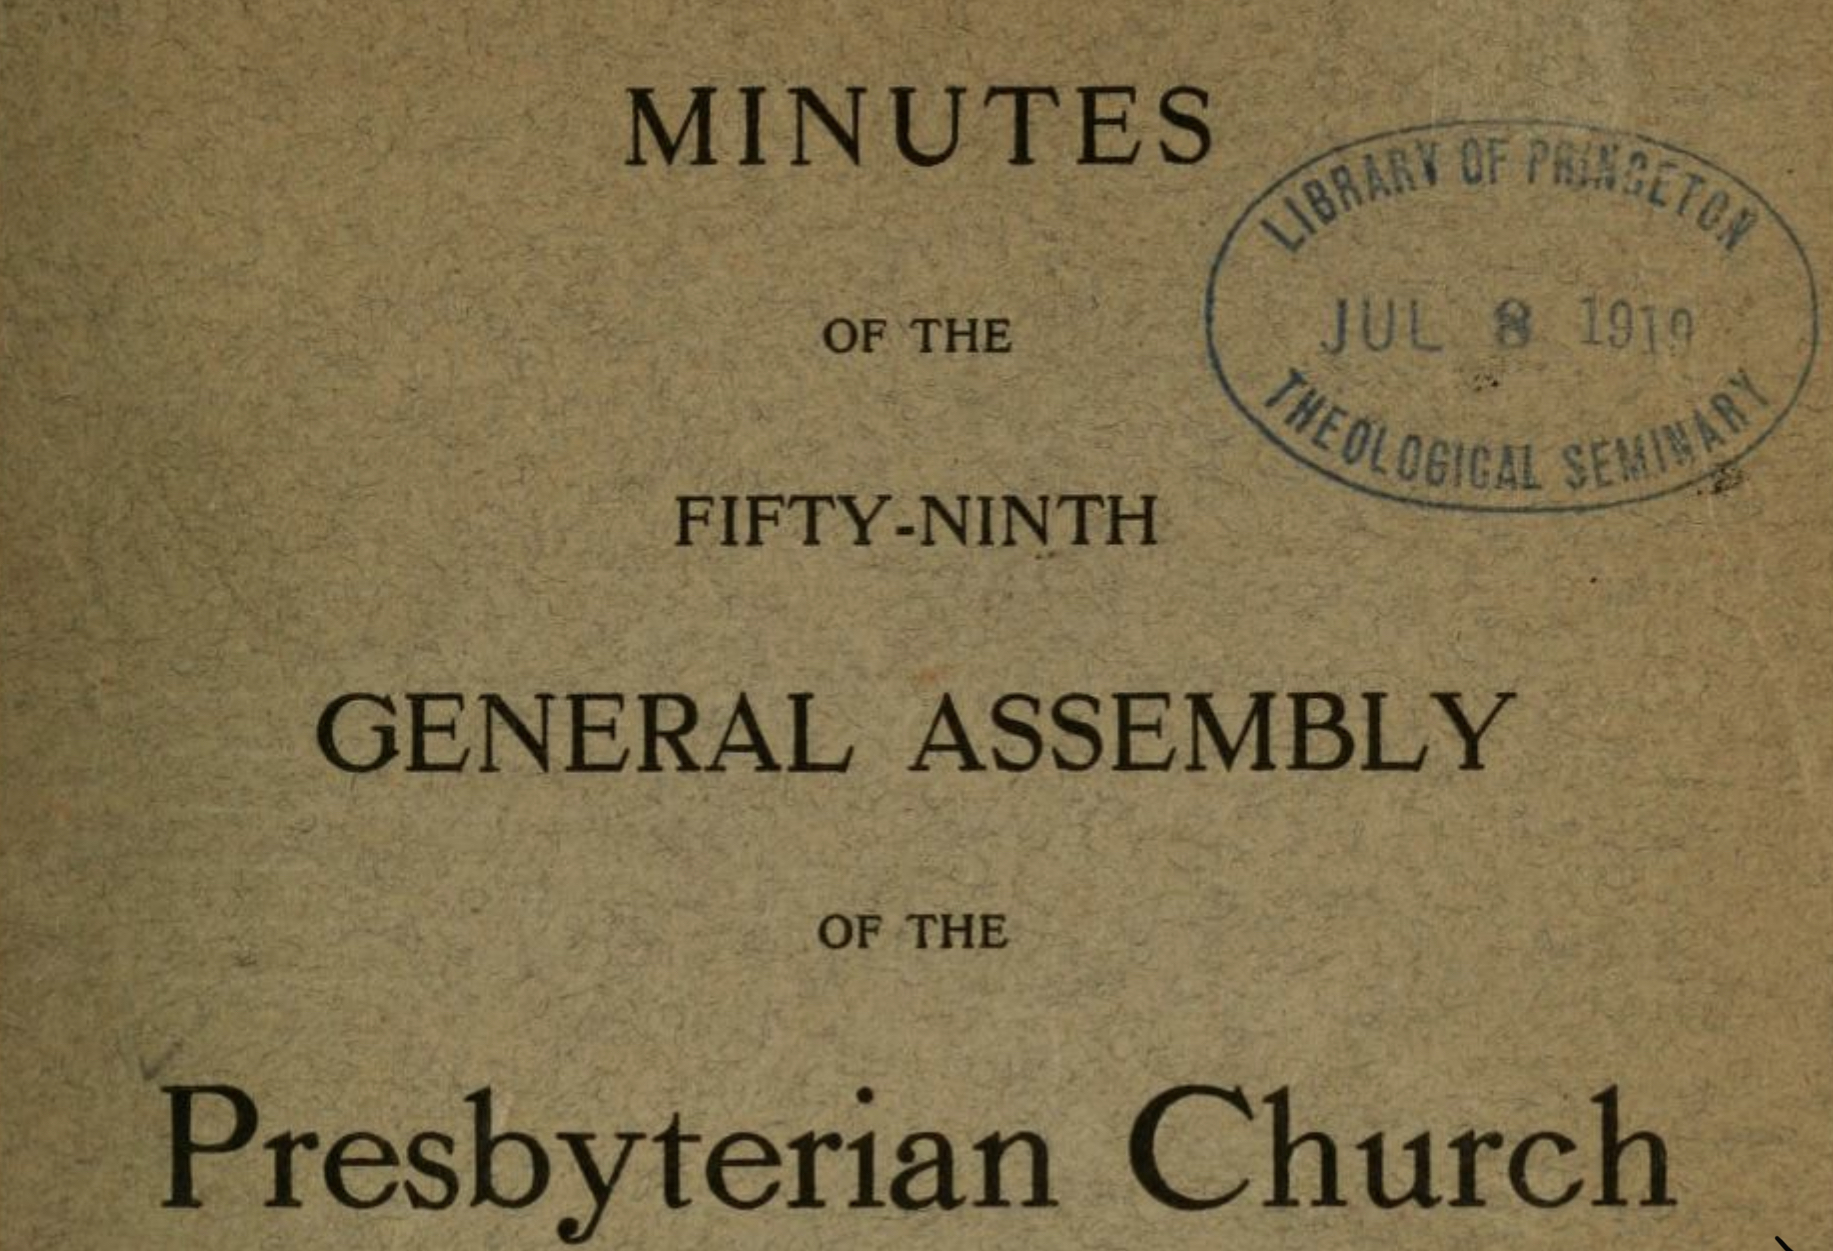 The impact of the Spanish Flu on the Southern Presbyterian Church